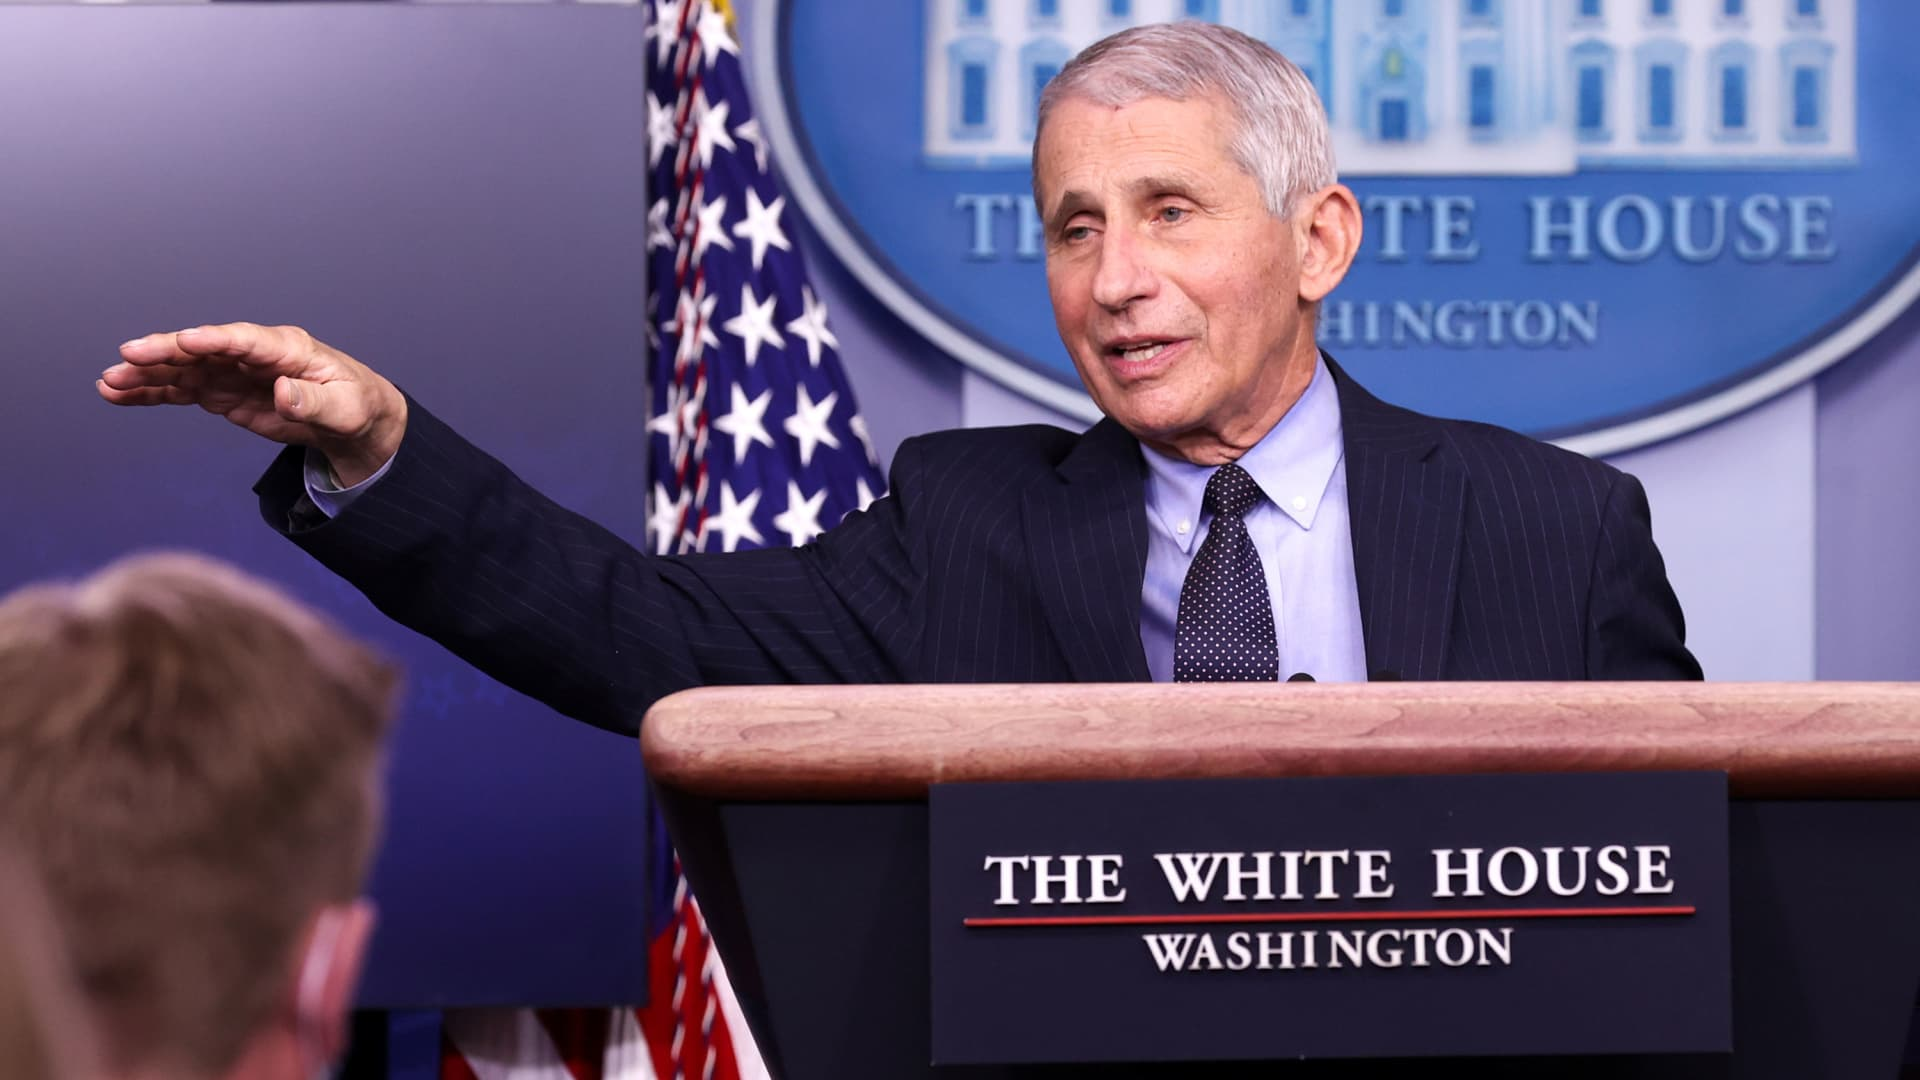 NIH National Institute of Allergy and Infectious Diseases Director Anthony Fauci addresses the daily press briefing at the White House in Washington, January 21, 2021.